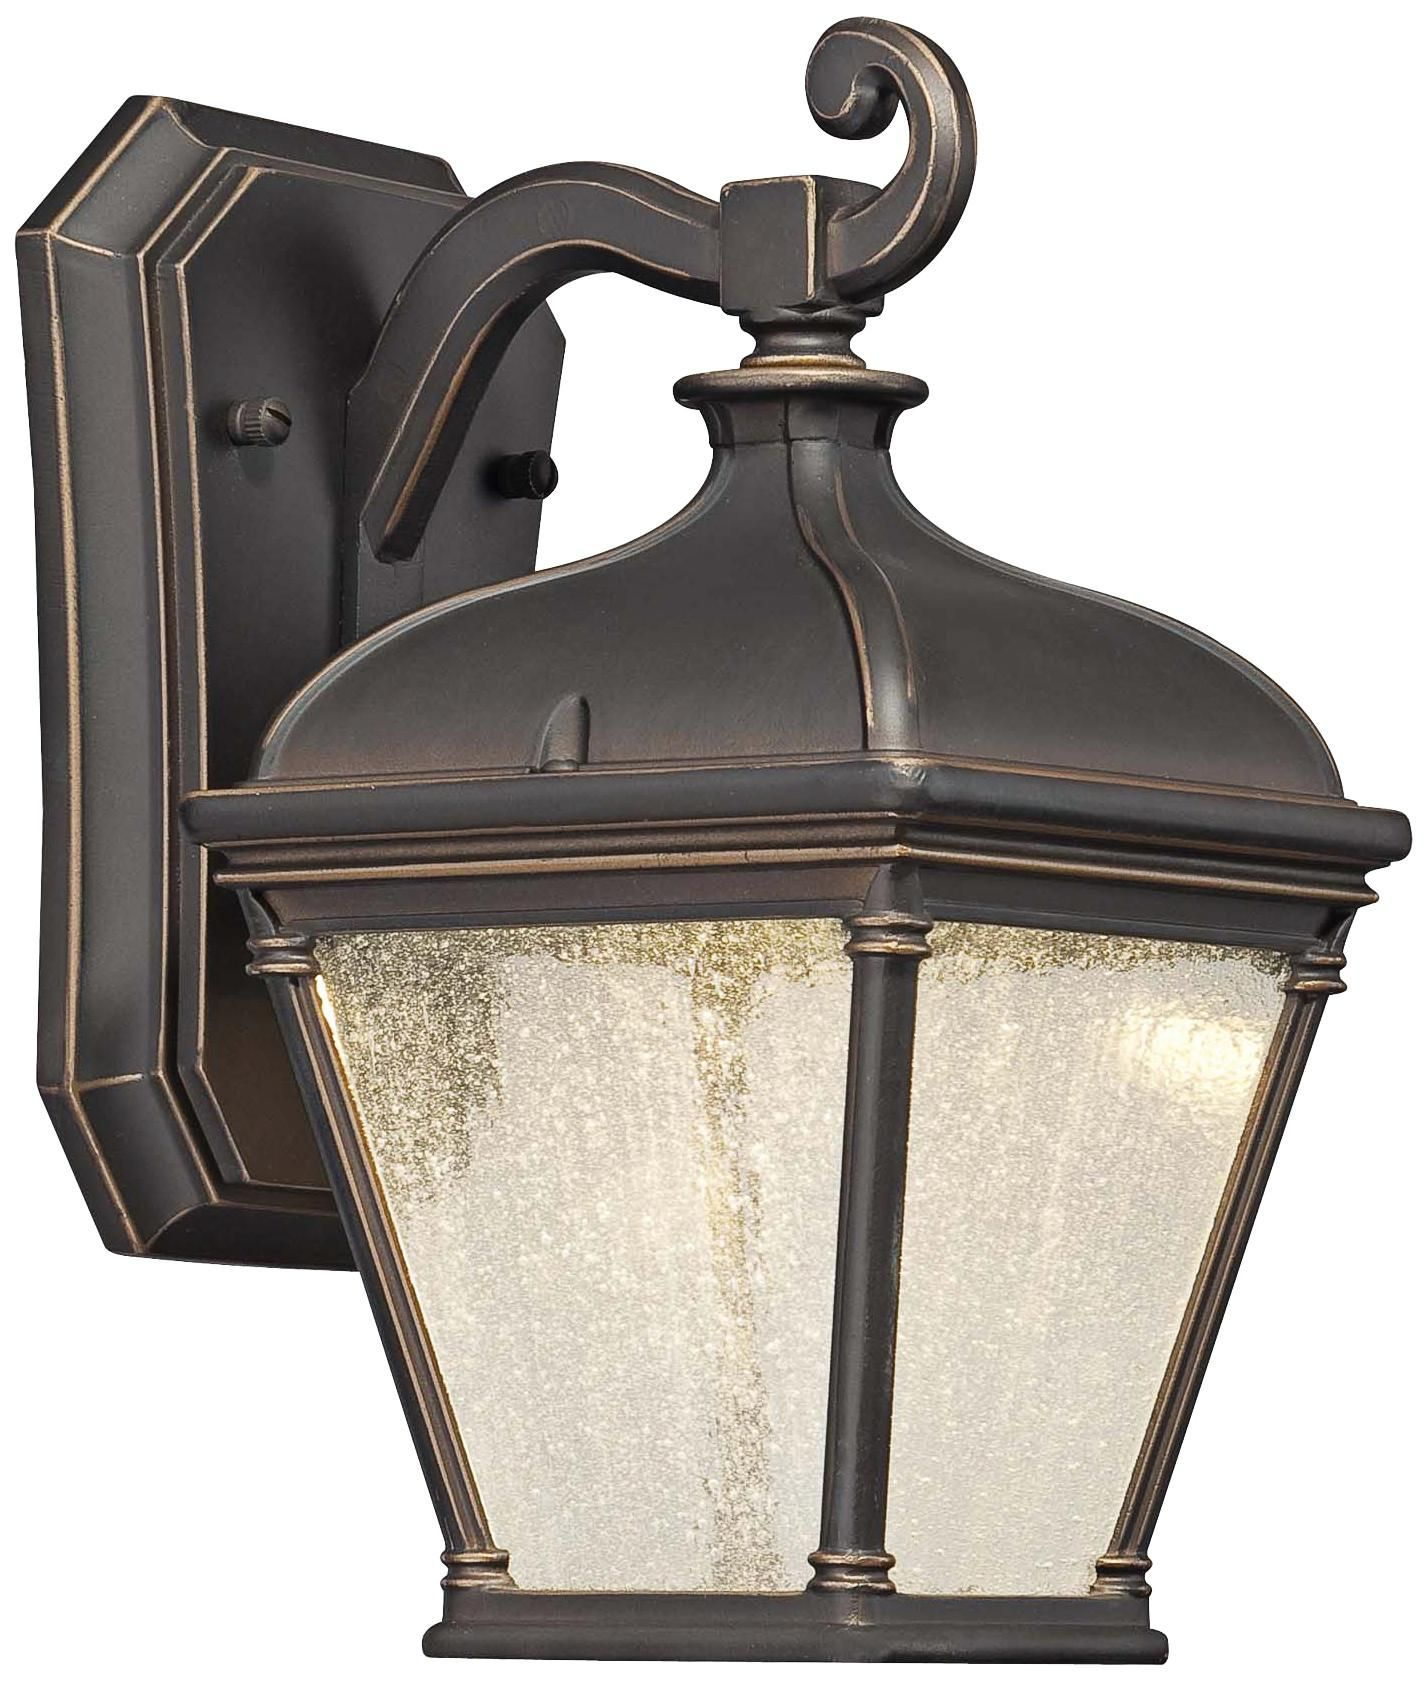 "Lauriston Manor 10"" High Bronze LED Outdoor Wall Light"